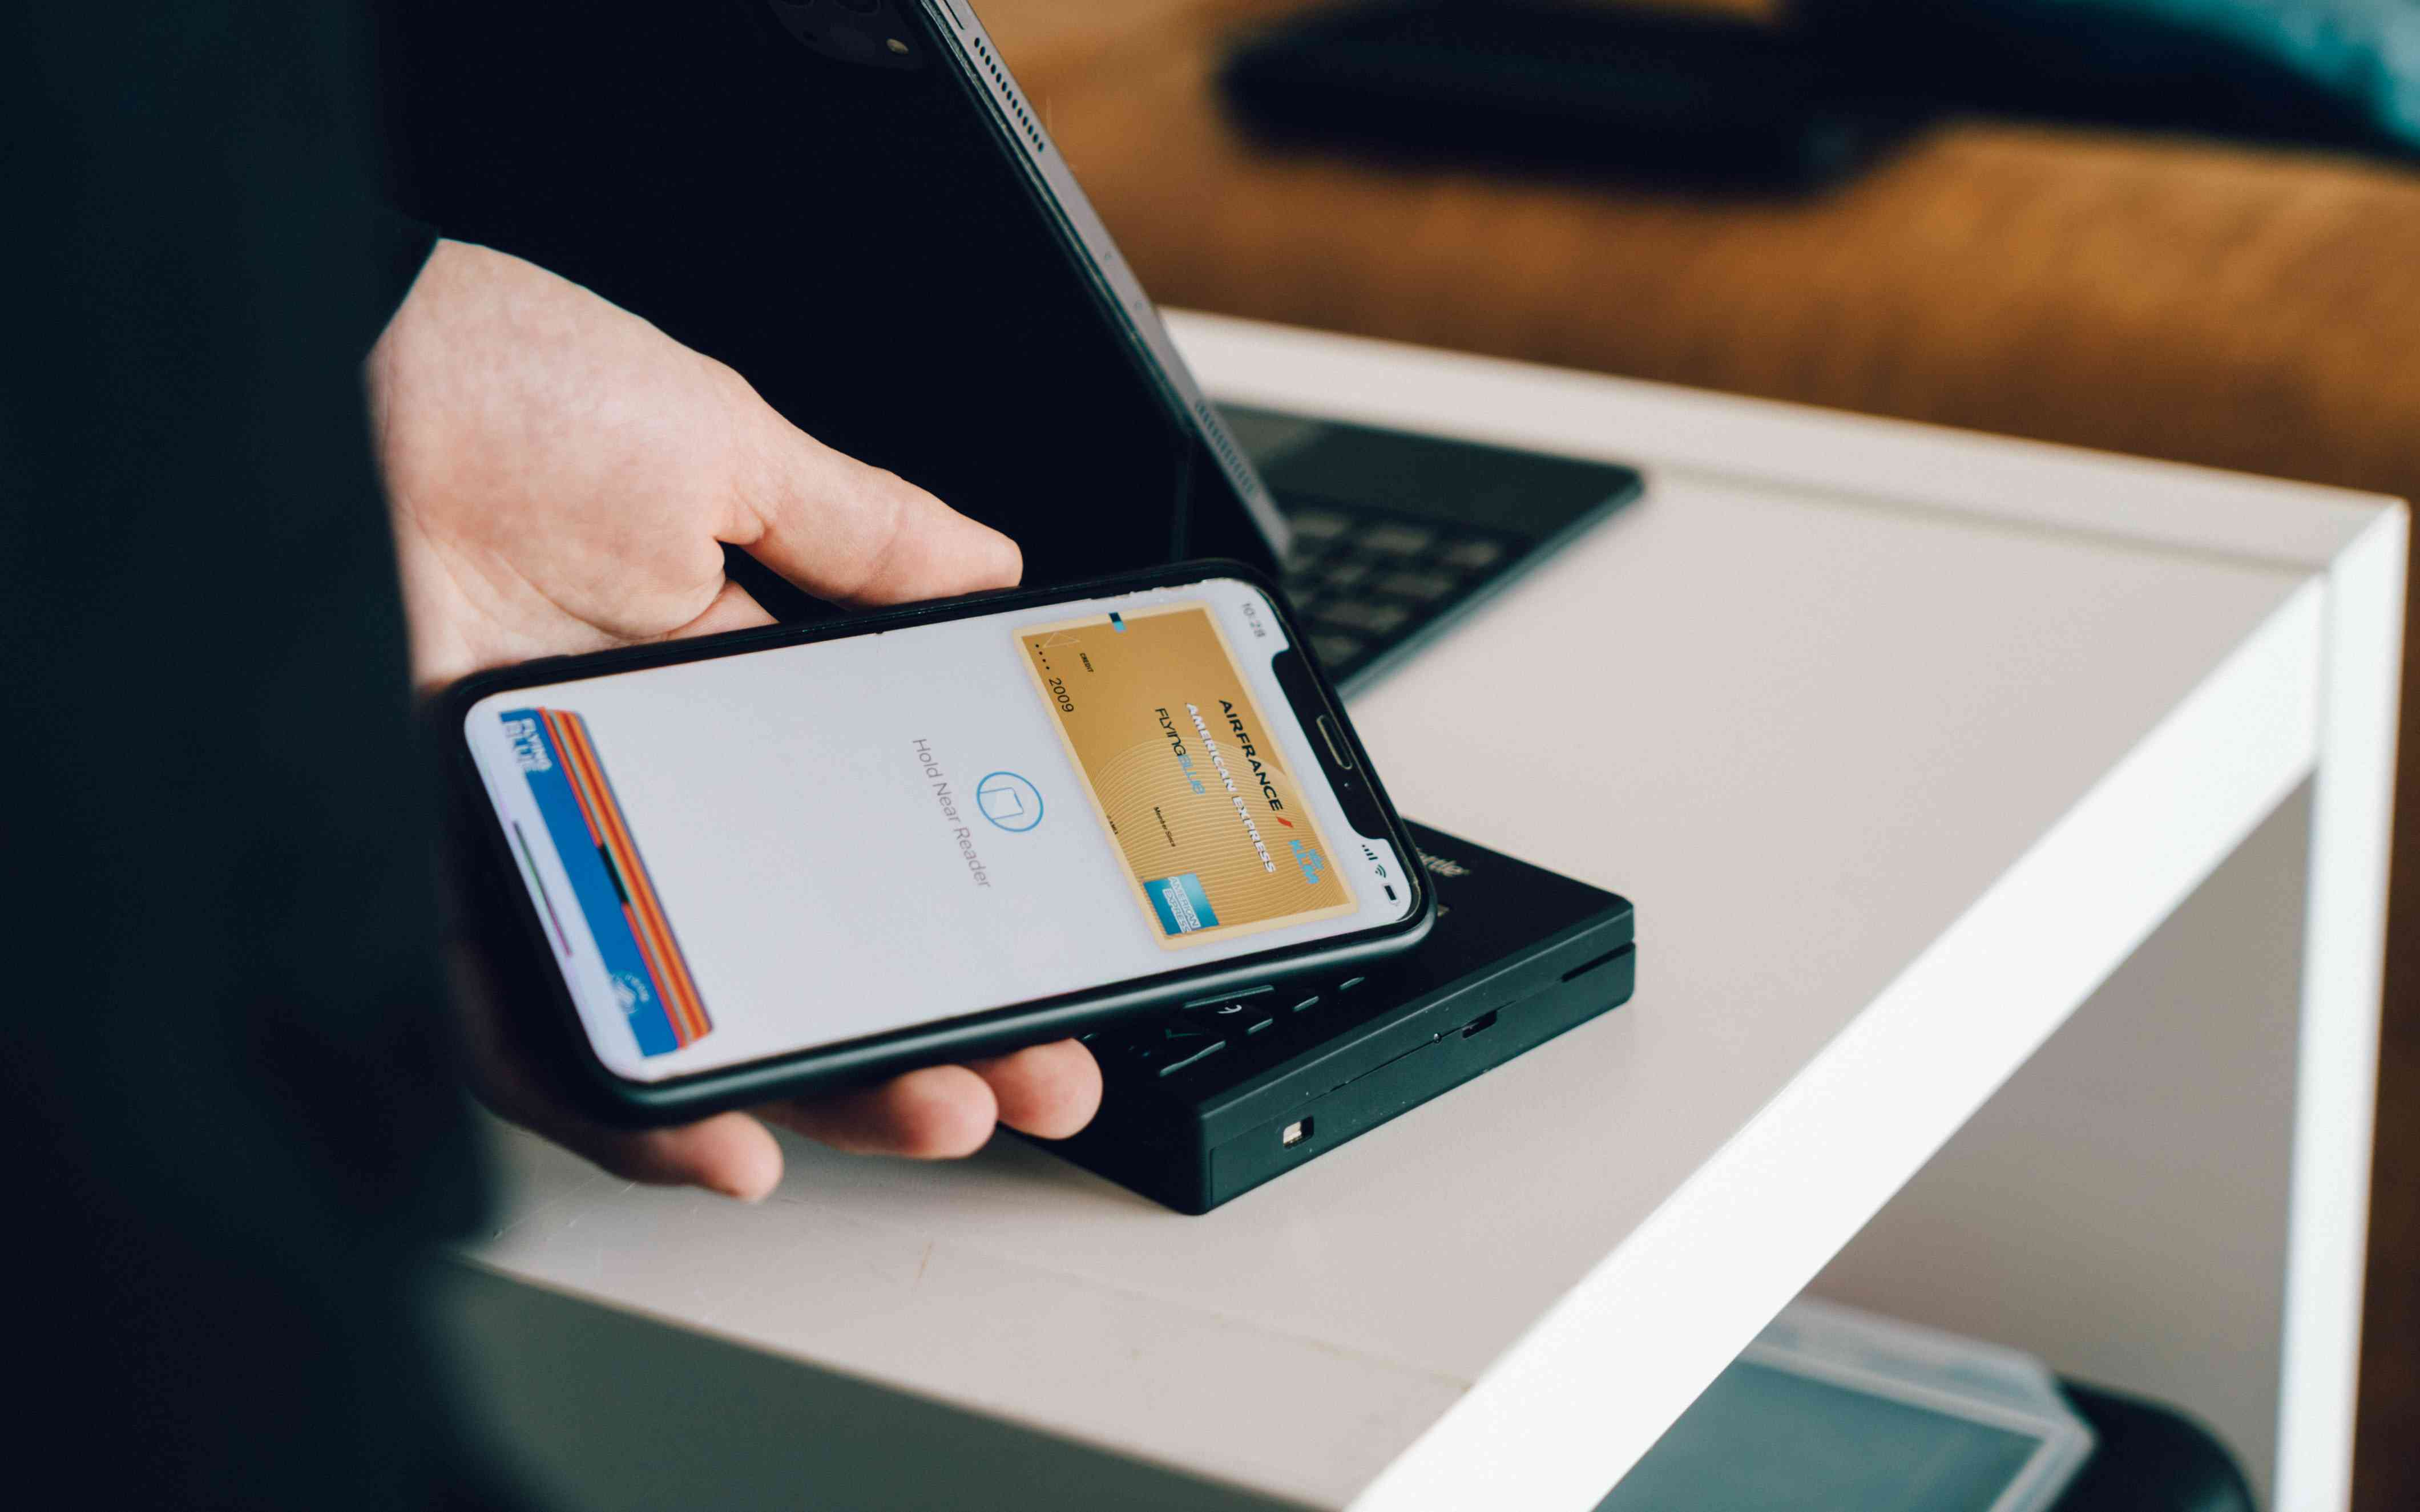 Someone using a smartphone wallet to pay for a purchase.